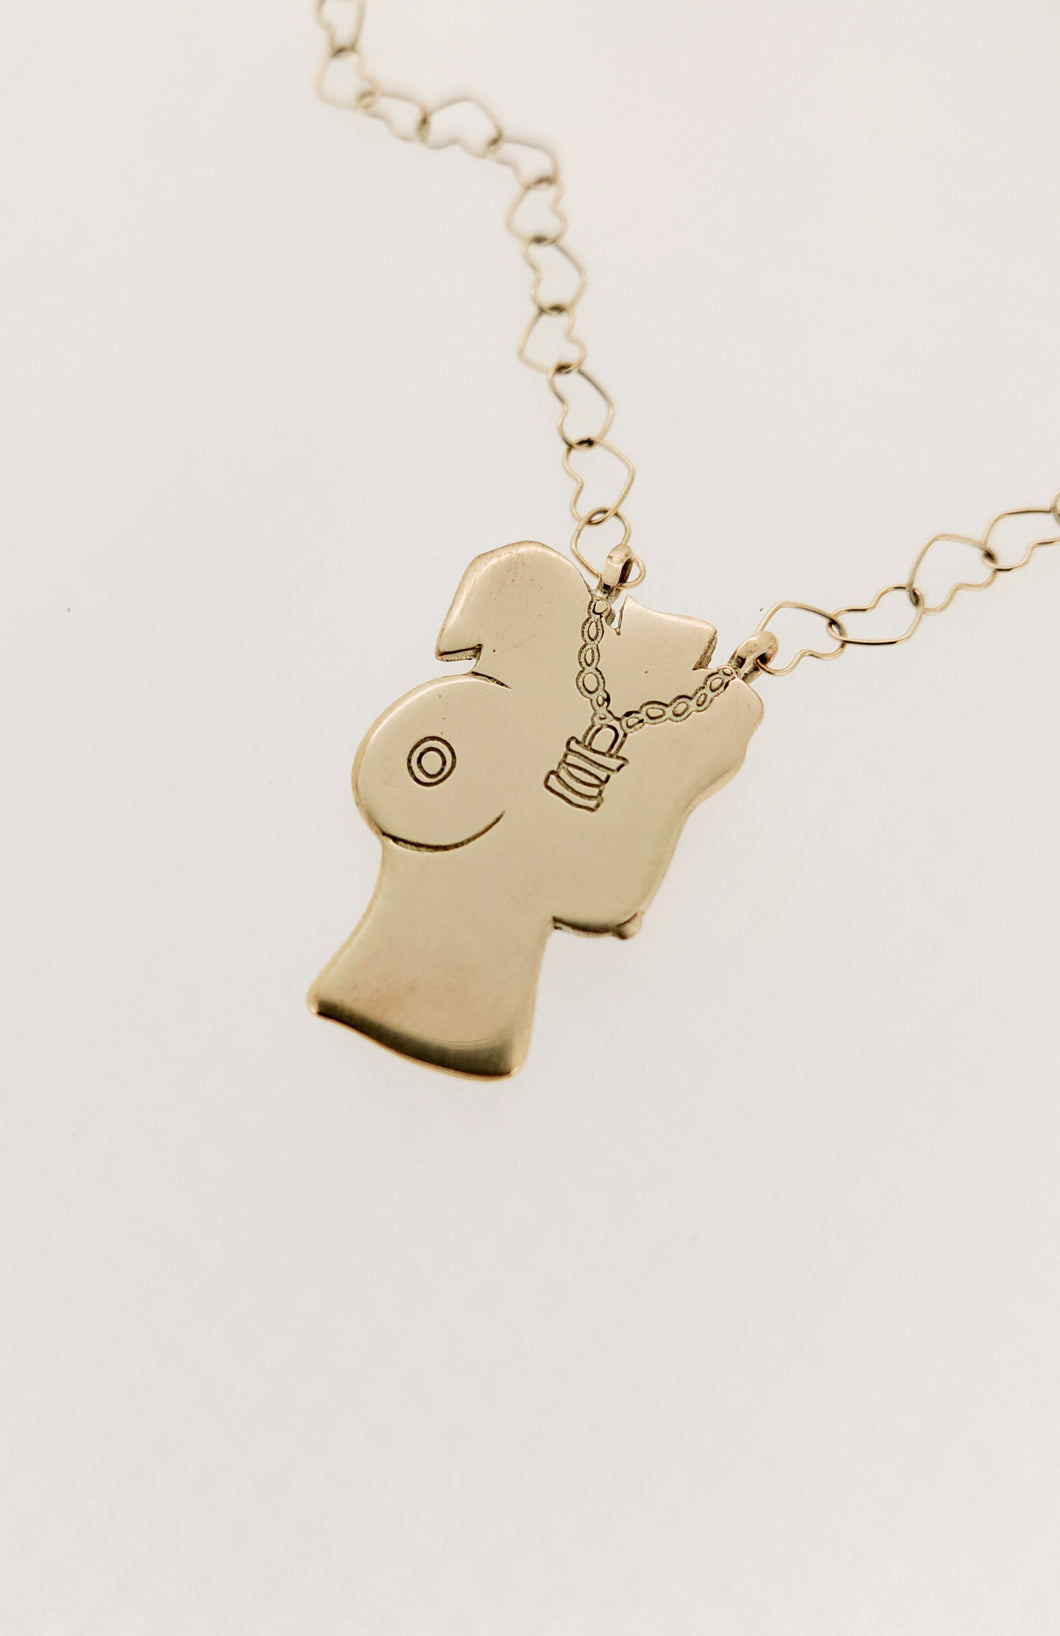 8th Charm Necklace